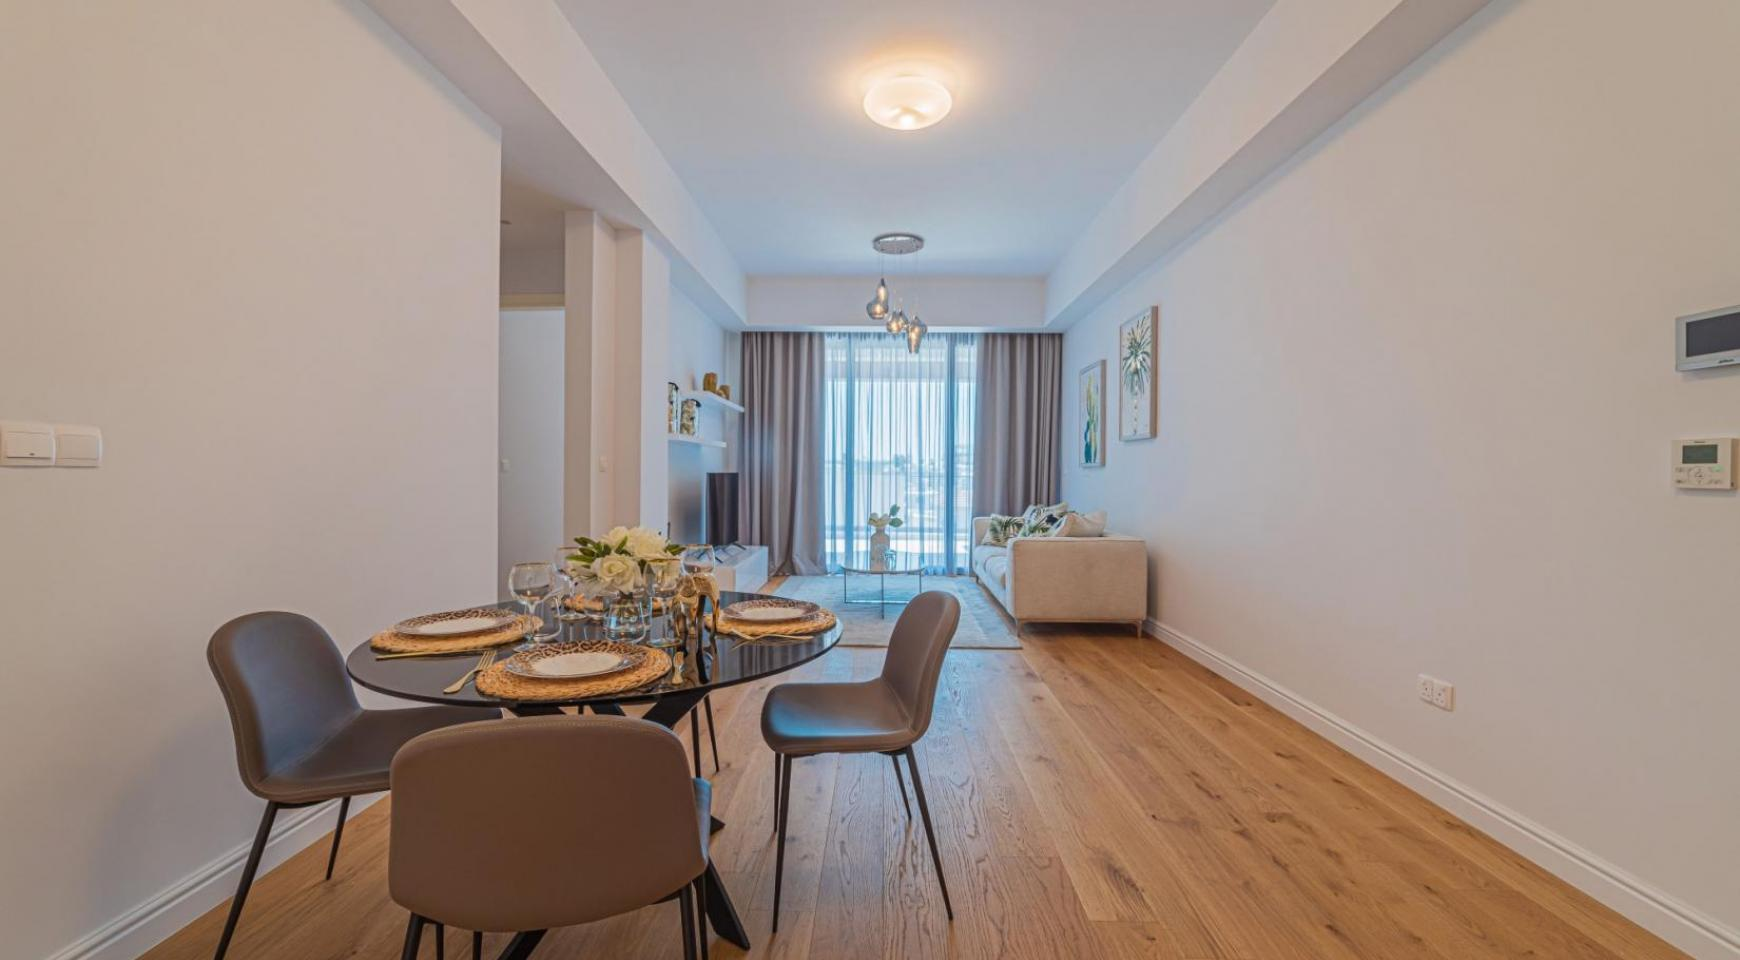 Hortensia Residence, Apt. 102. 2 Bedroom Apartment within a New Complex near the Sea  - 56